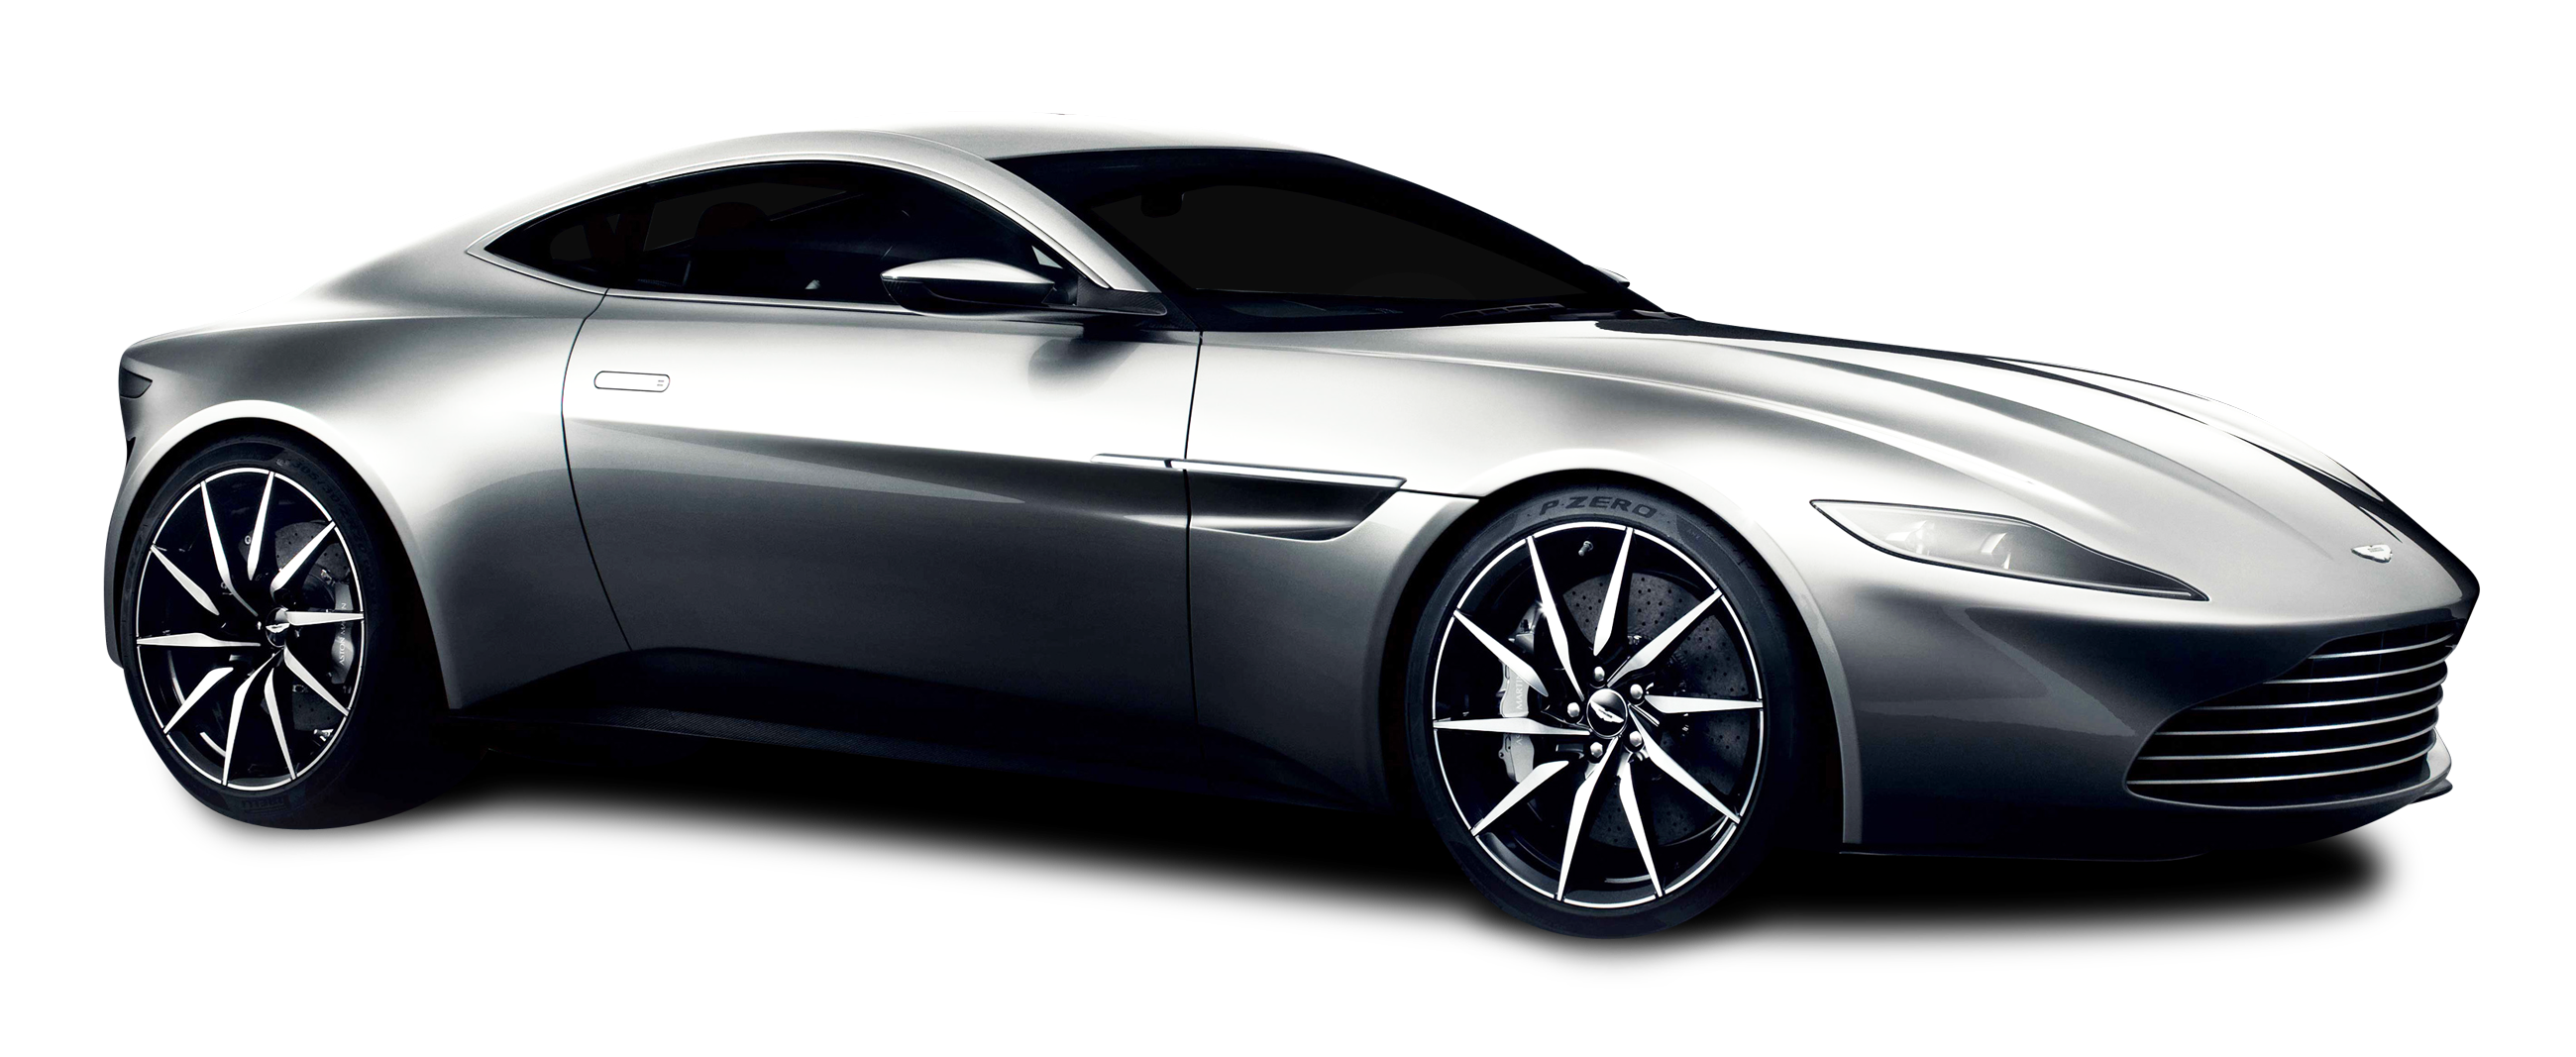 Silver car clipart svg black and white library Aston Martin DB10 Silver Car PNG Image - PurePNG | Free transparent ... svg black and white library